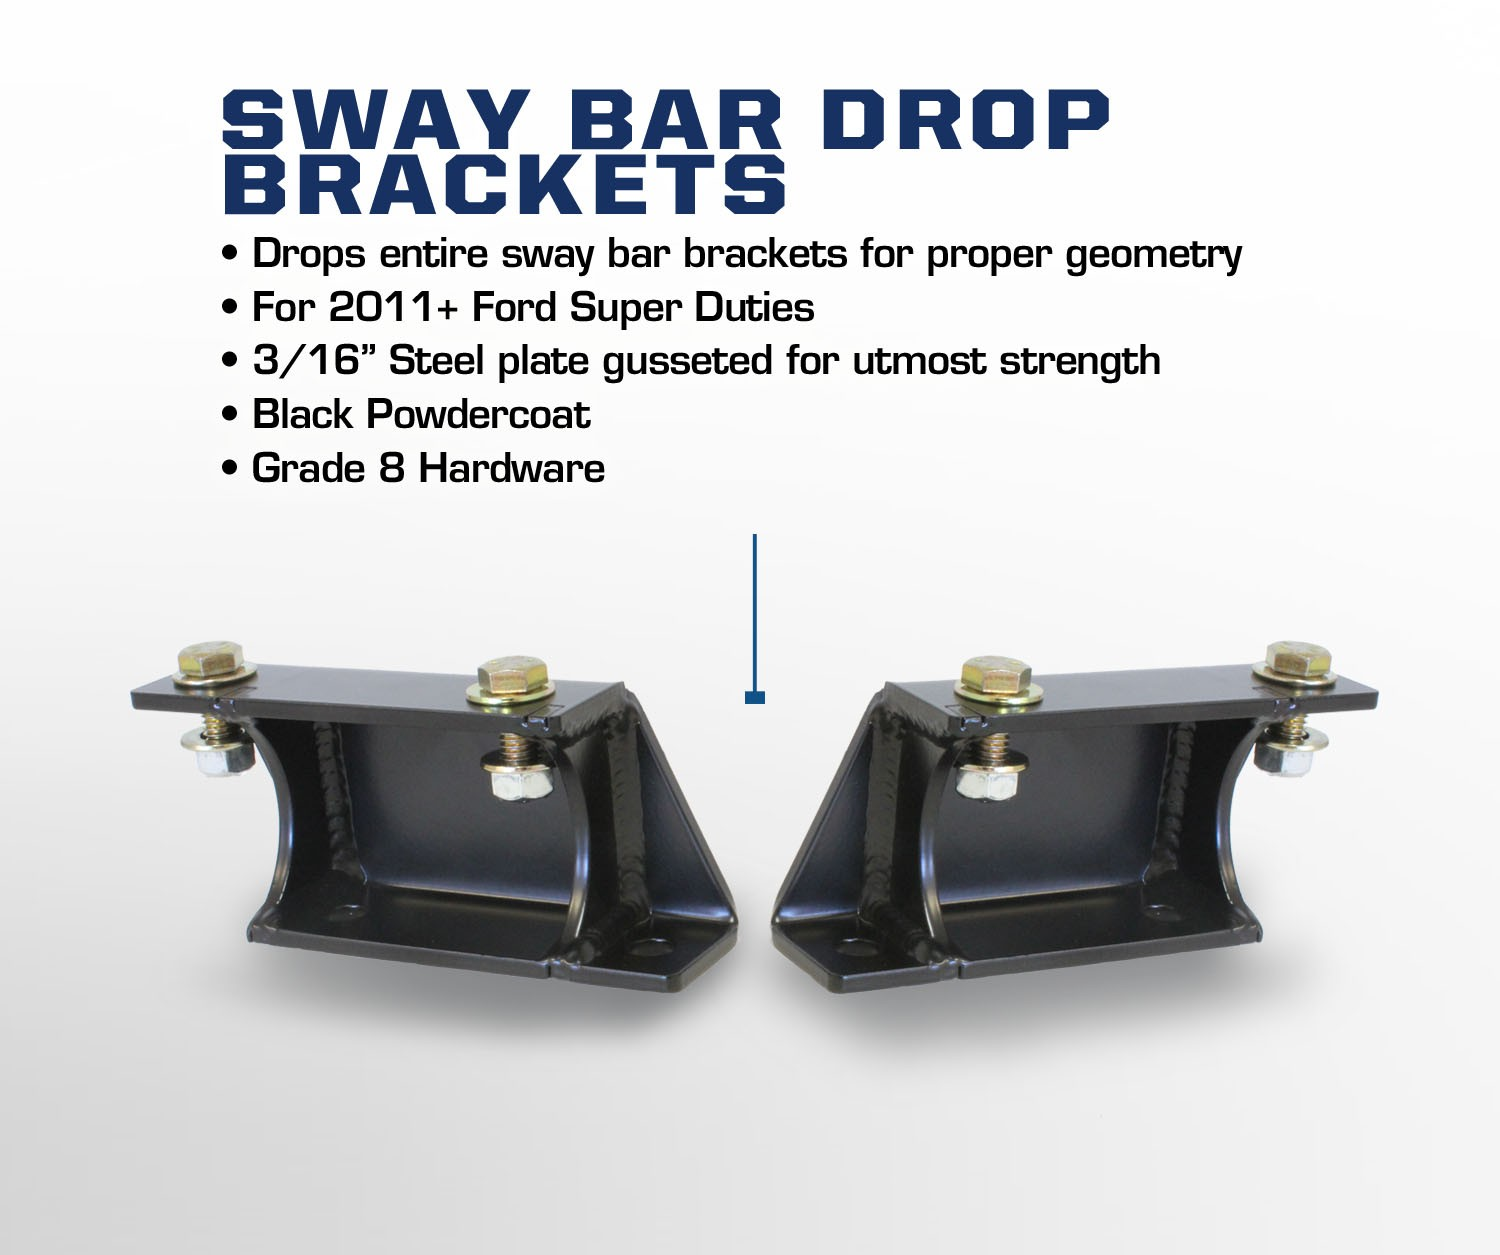 Carli Suspension Sway Bar Drop Brackets for Ford SuperDuty